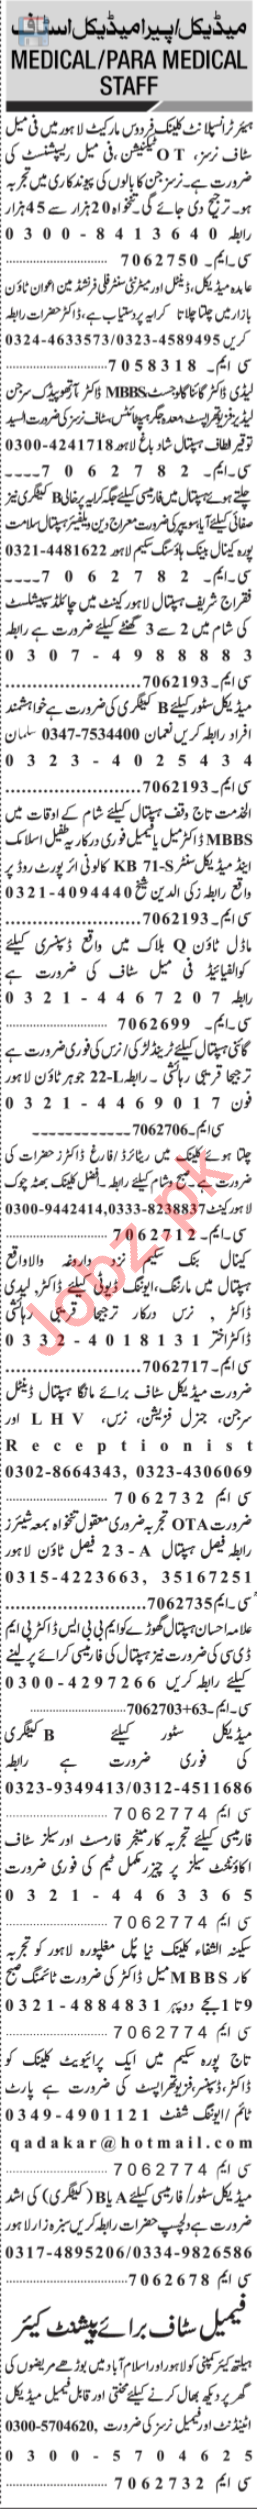 Jang Sunday Classified Ads 17th March 2019 Paramedical Staff